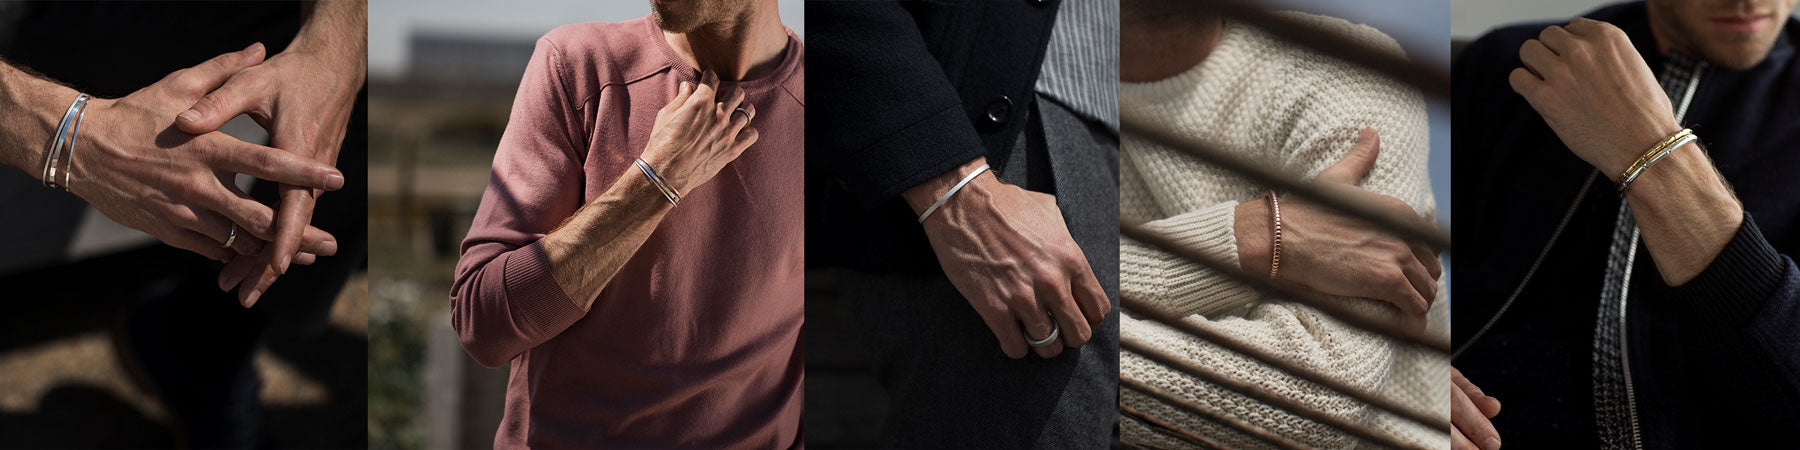 mens copper bracelets | men silver bracelets | valentines gifts for him | gift ideas for men